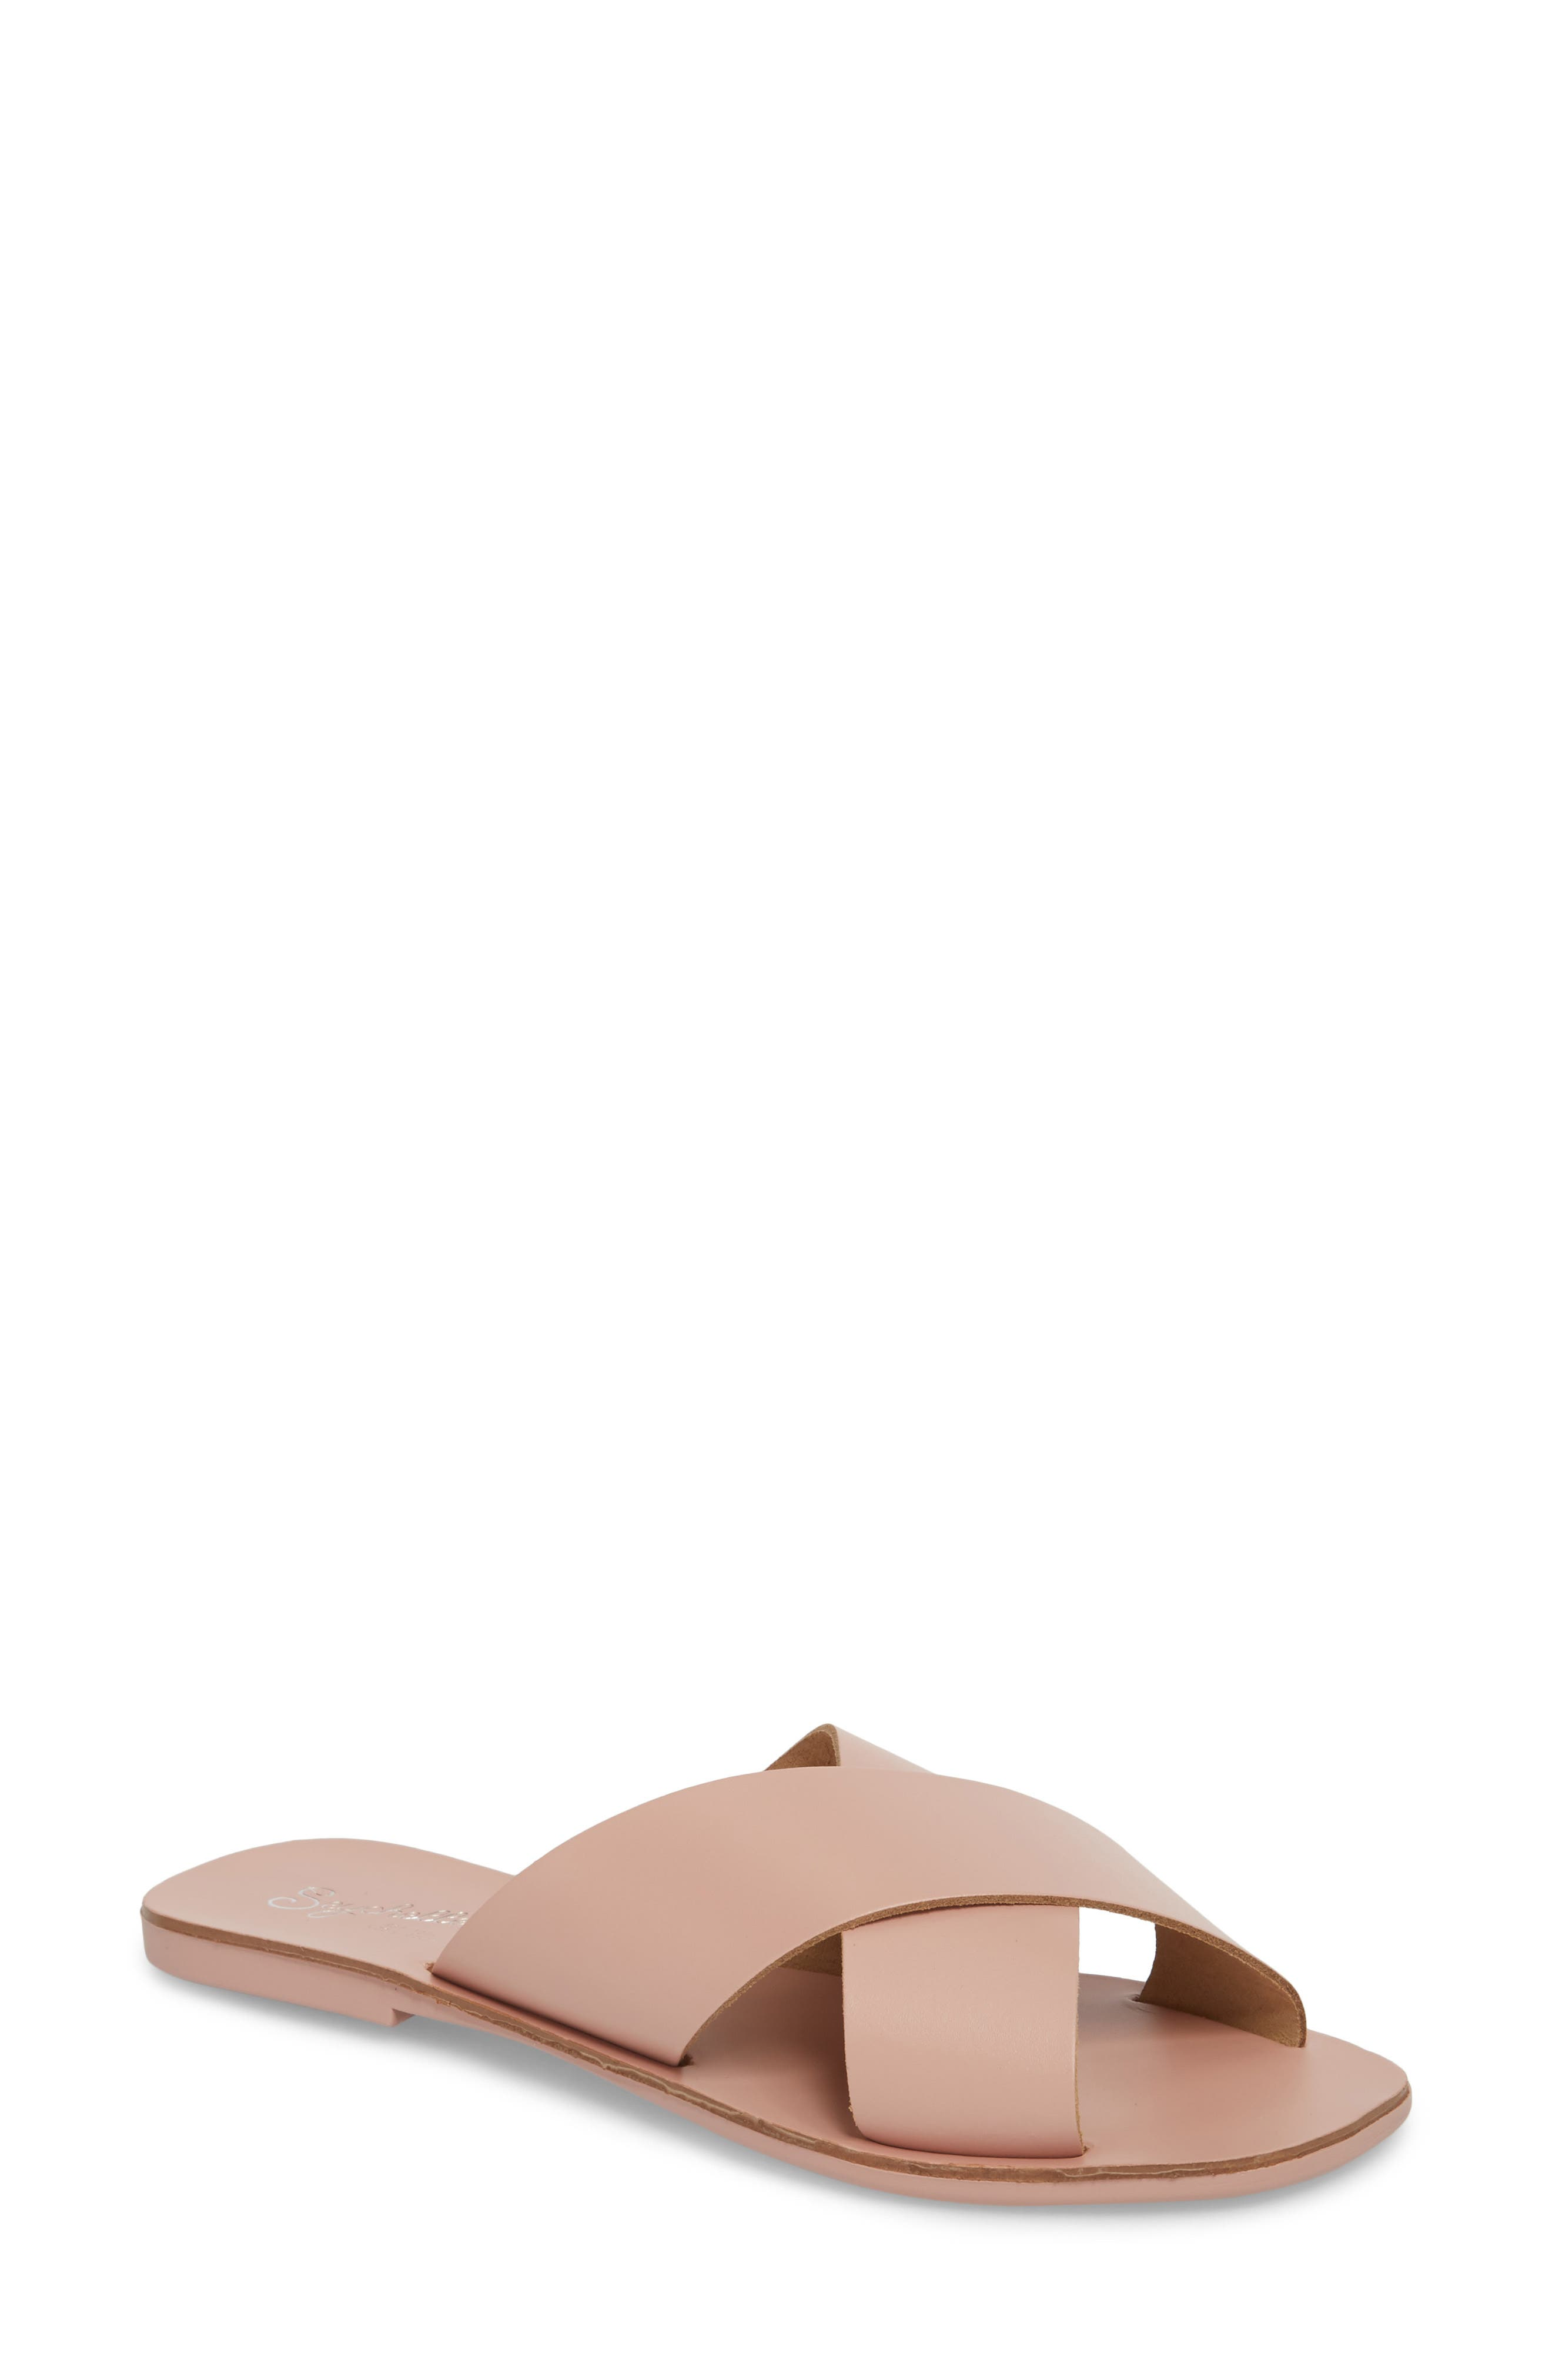 Total Relaxation Slide Sandal,                         Main,                         color, Pink Leather